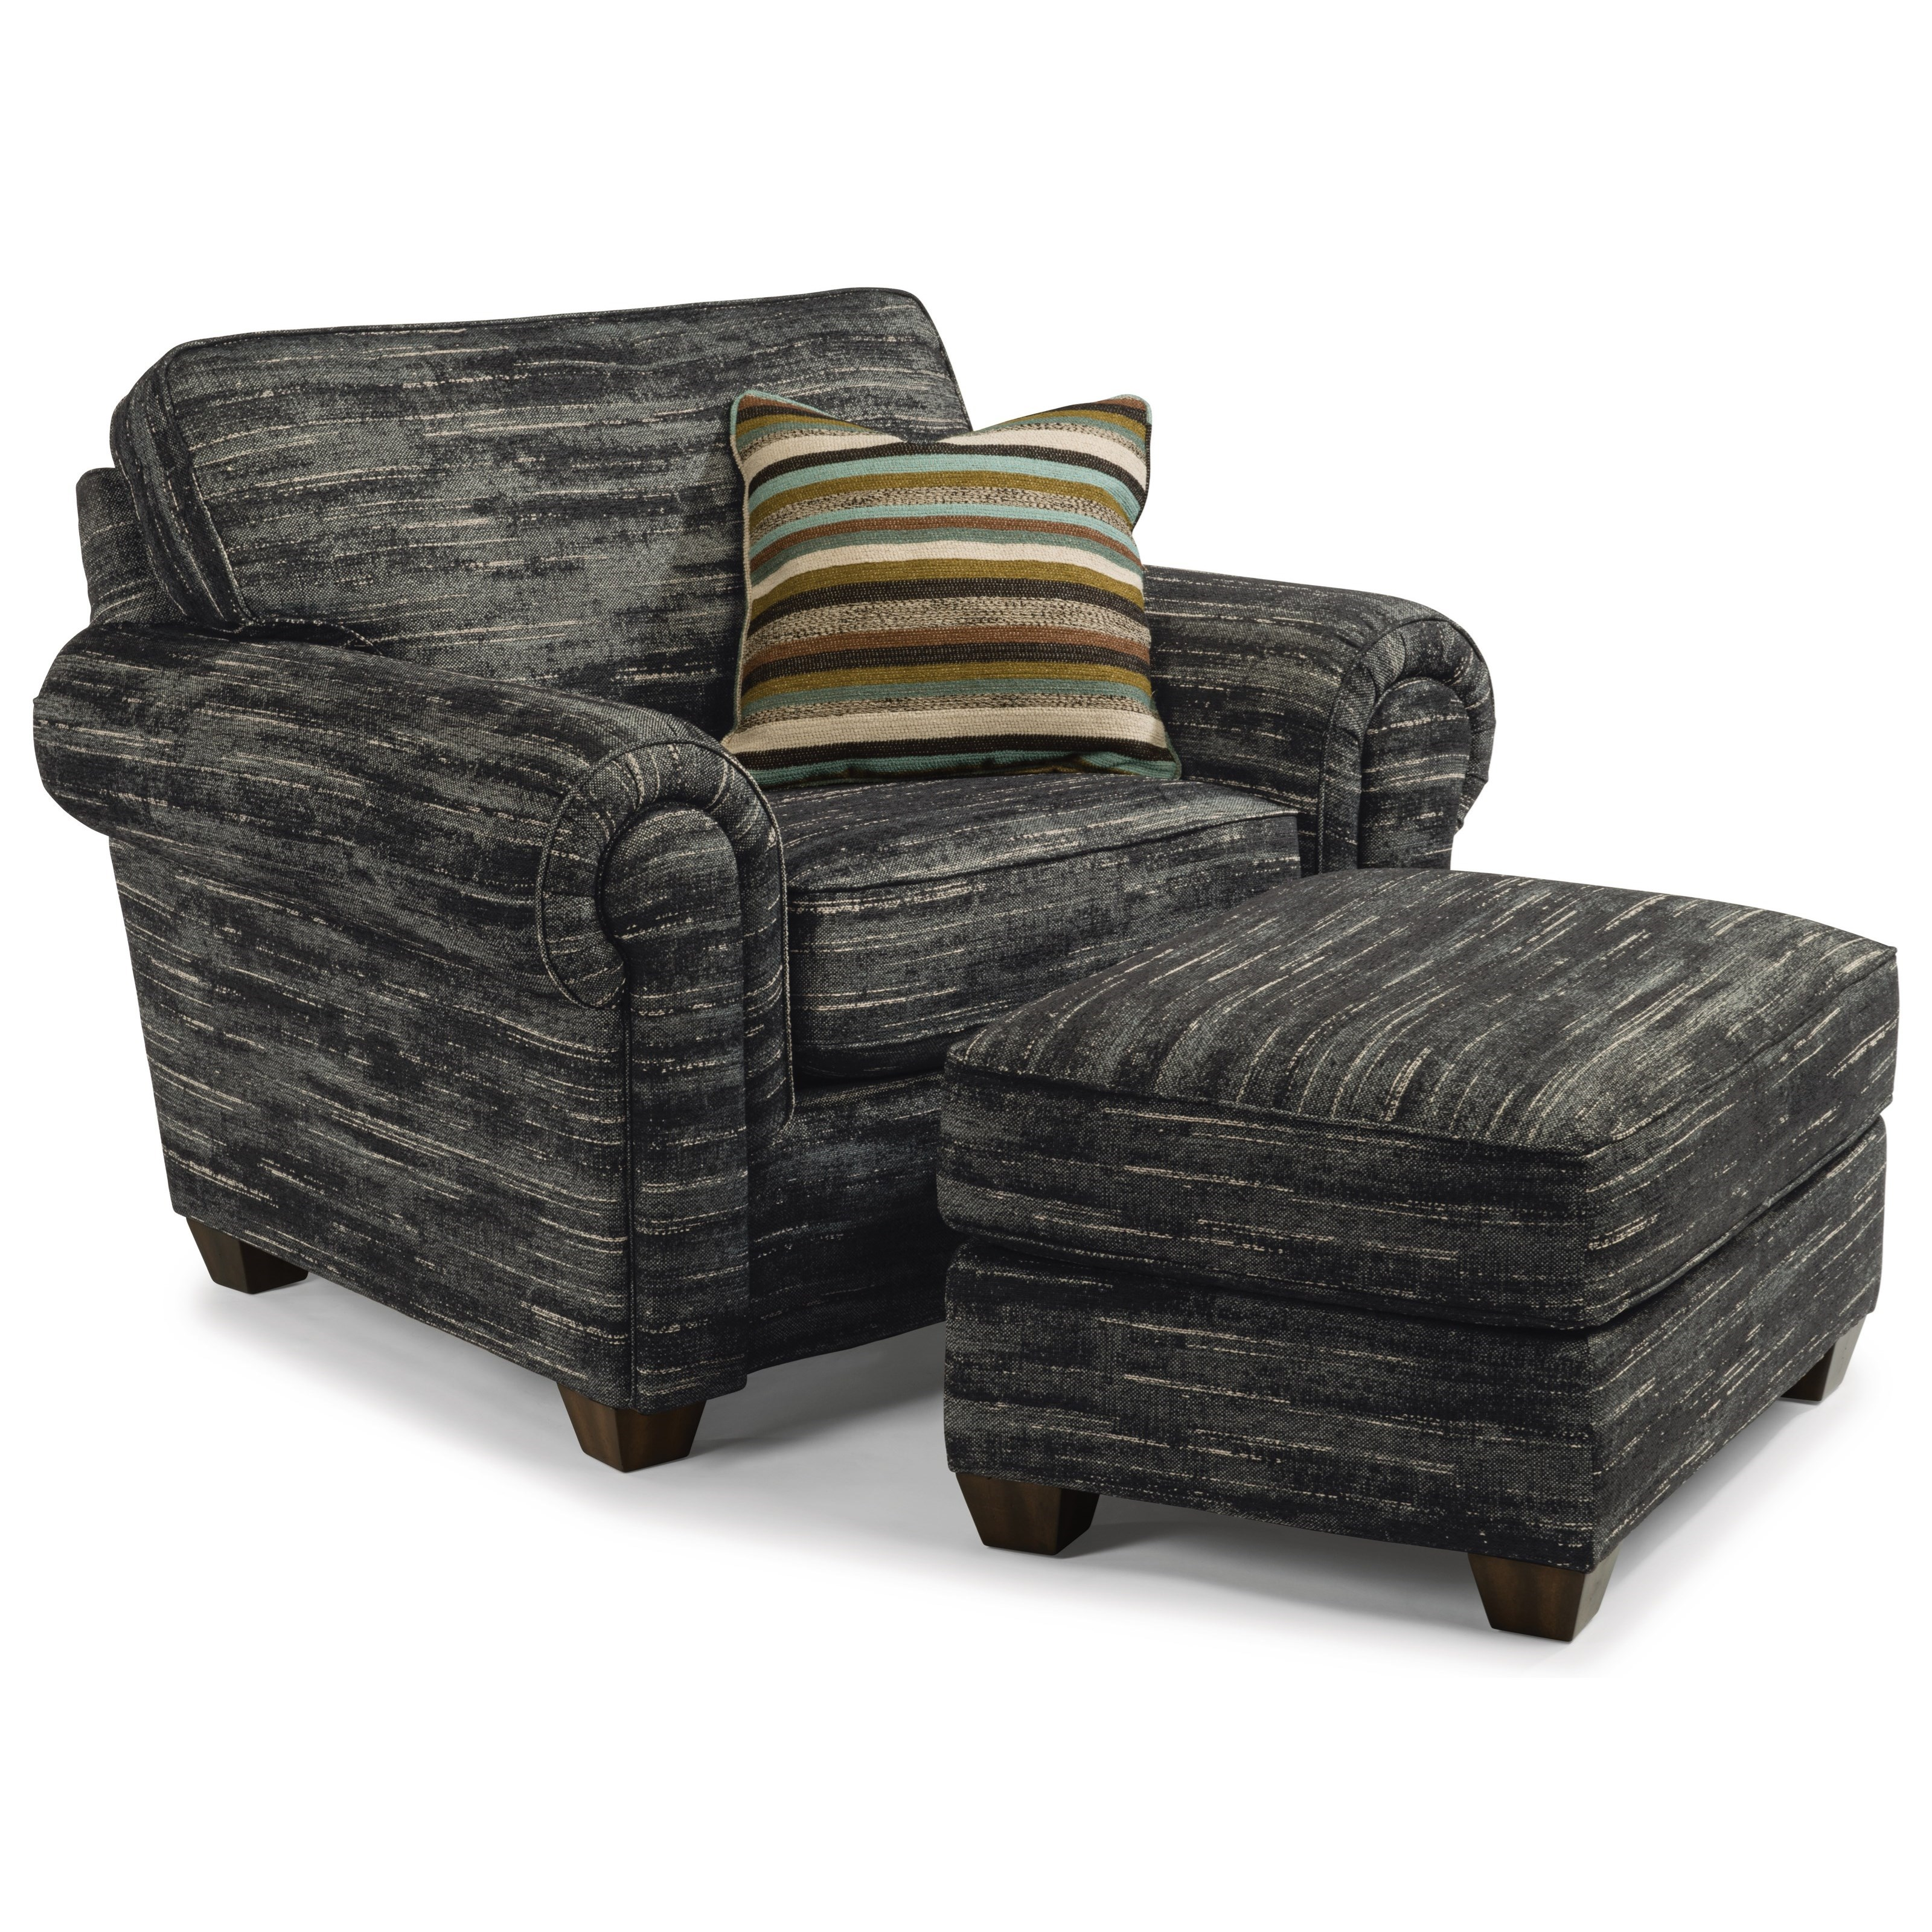 Carson Chair and Ottoman Set by Flexsteel at Jordan's Home Furnishings